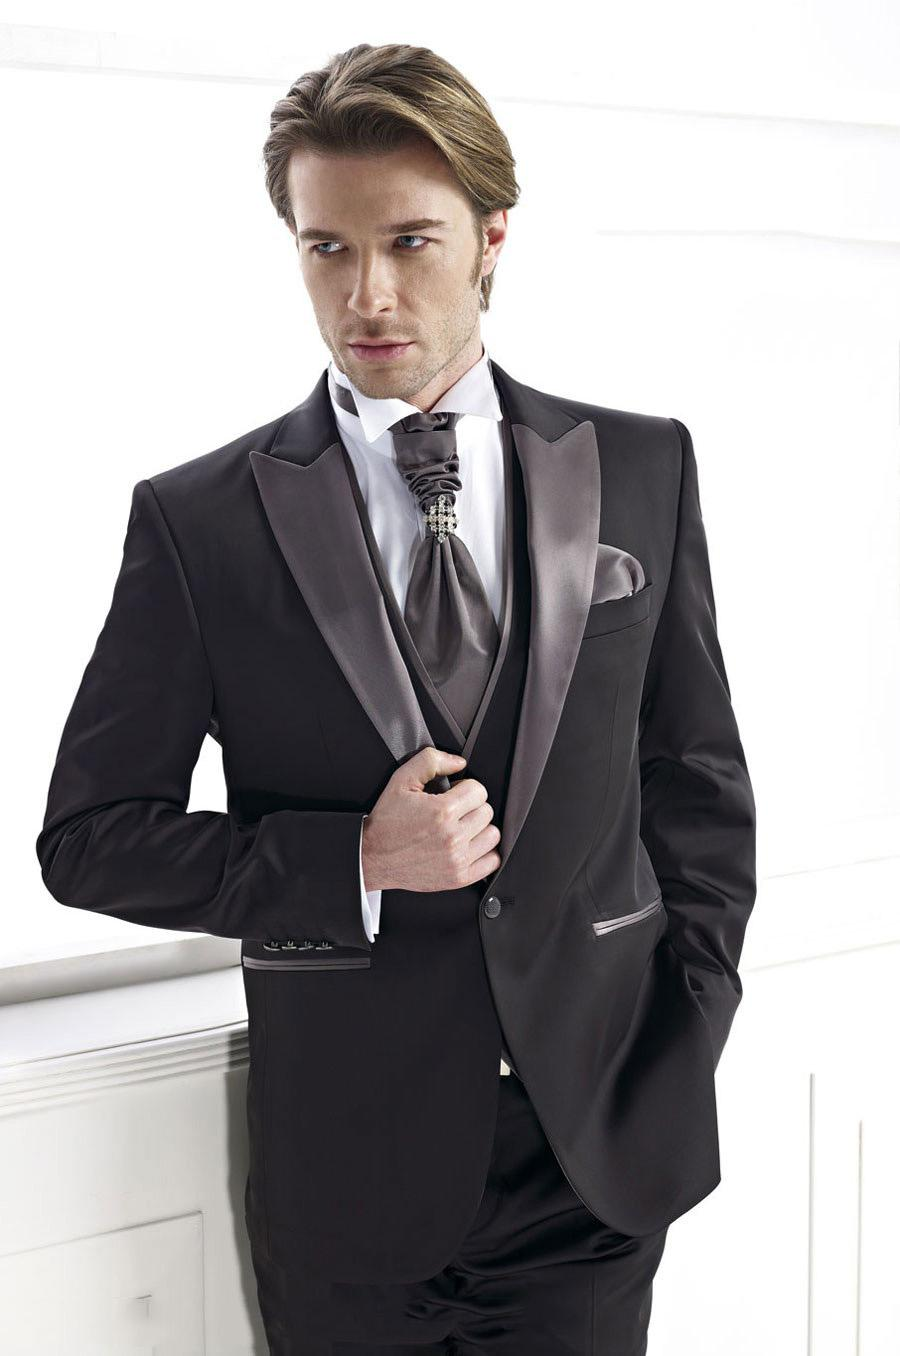 Compare Prices on Dinner Suits- Online Shopping/Buy Low Price ...